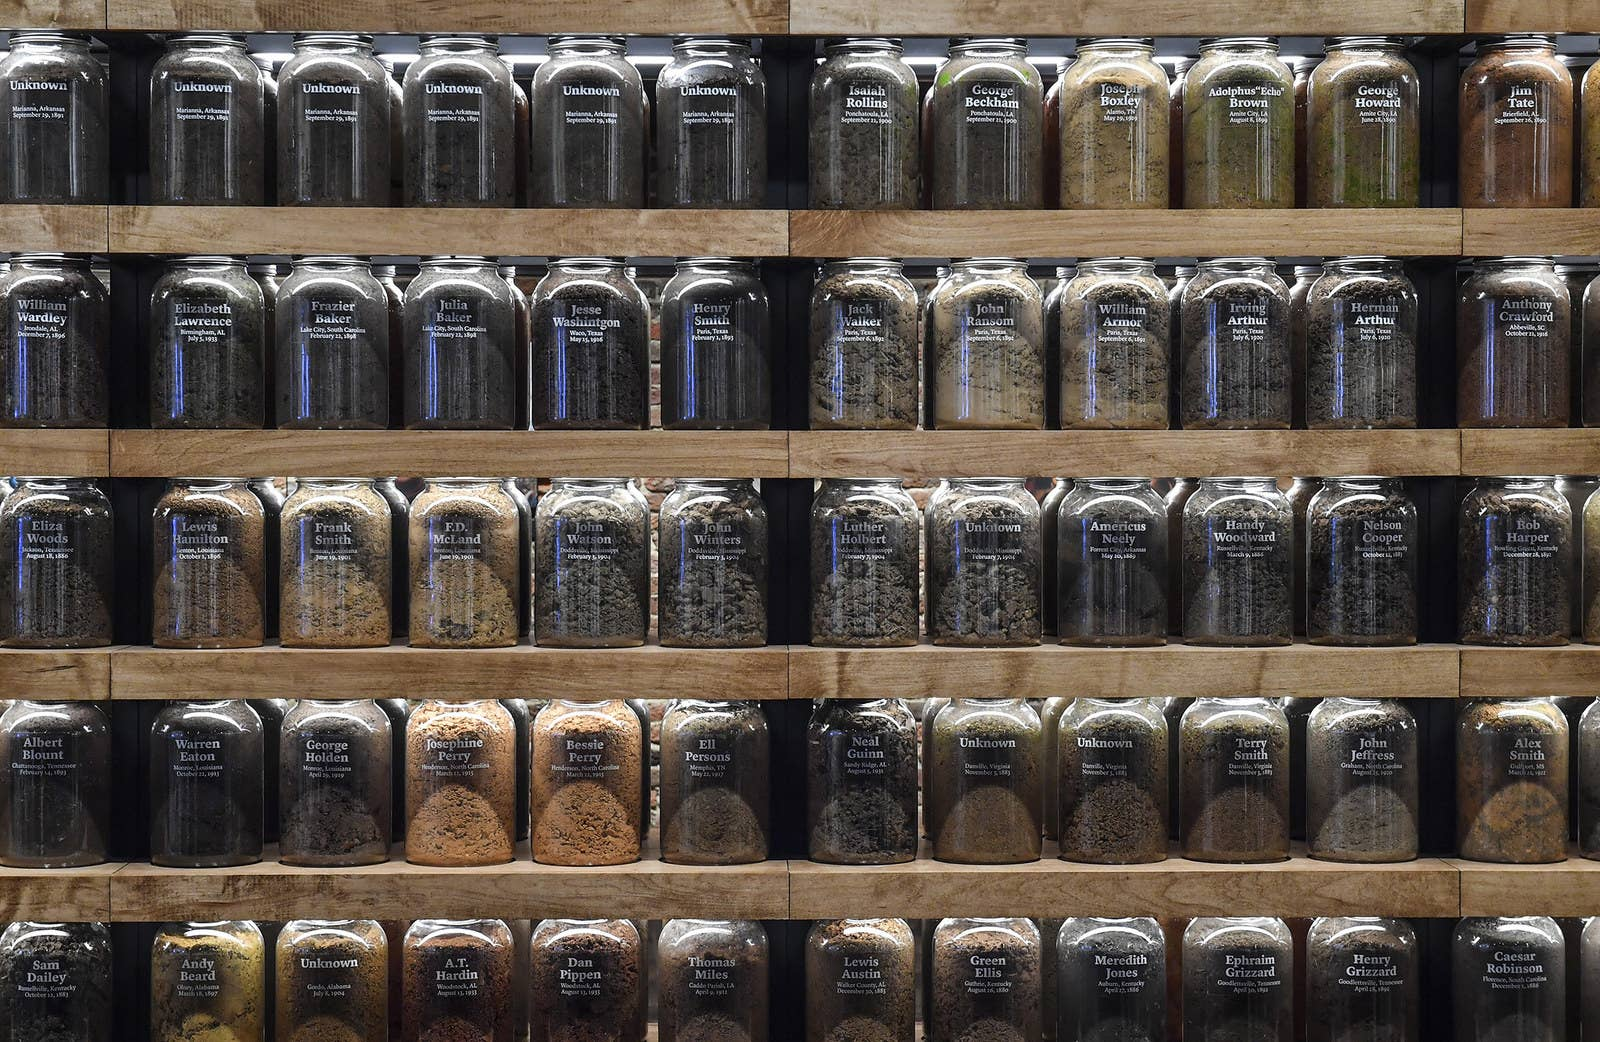 Soil samples from lynching sites across the country are displayed at the Legacy Museum. Each sample of soil has a date of a lynching and the name of the person lynched. On some samples, the jars are marked with Unknown if the names were not known.